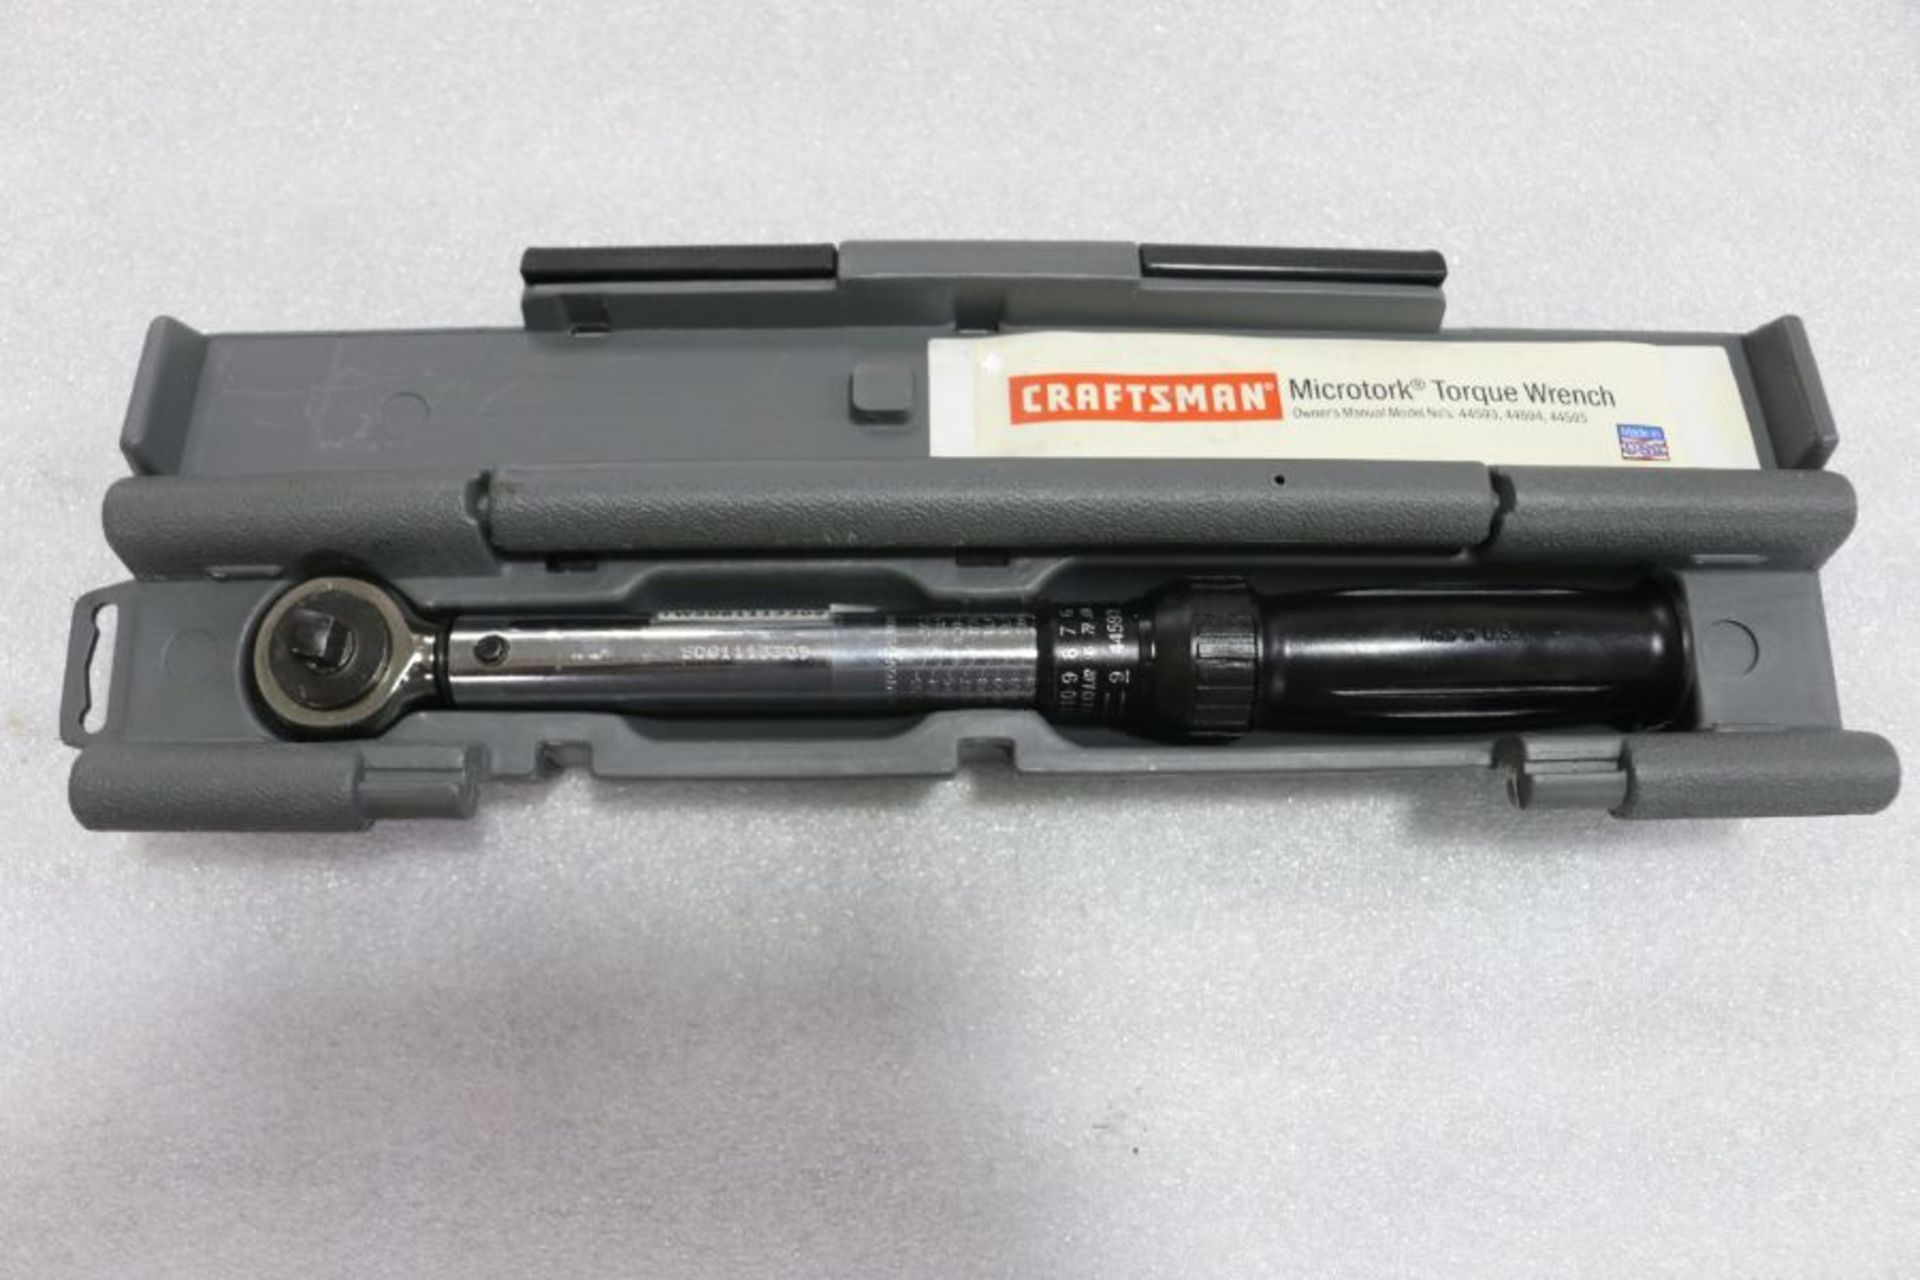 "Lot 2 - Craftsman Microtork 3/8"" Torque Wrench"